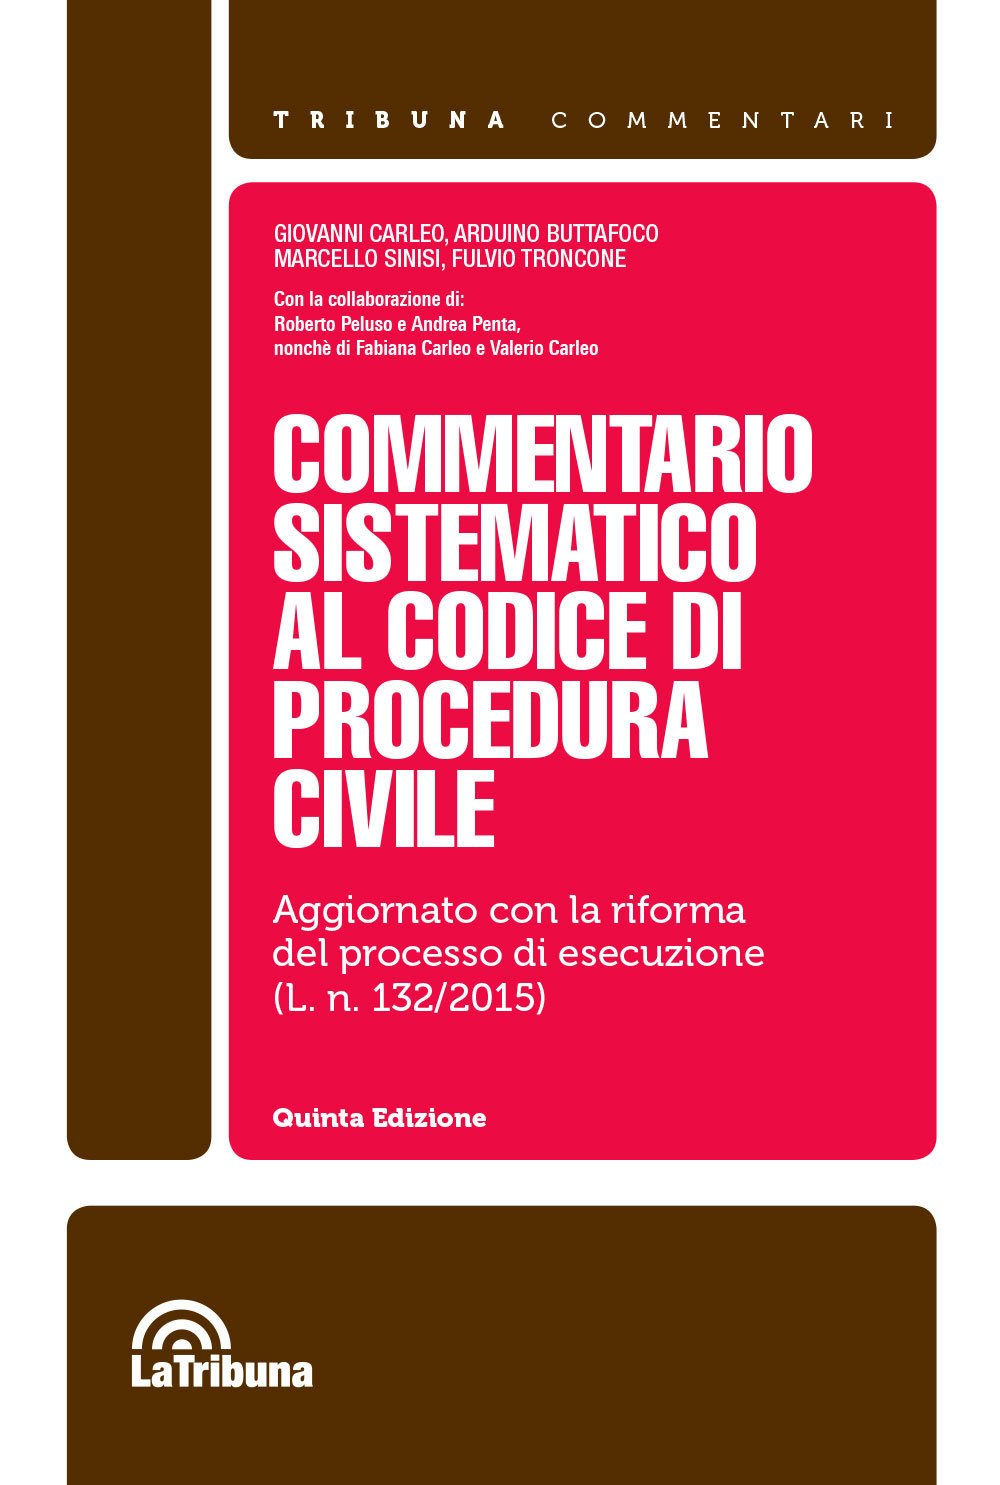 Download Commentario Sistematico Al Codice Di Procedura Civile 